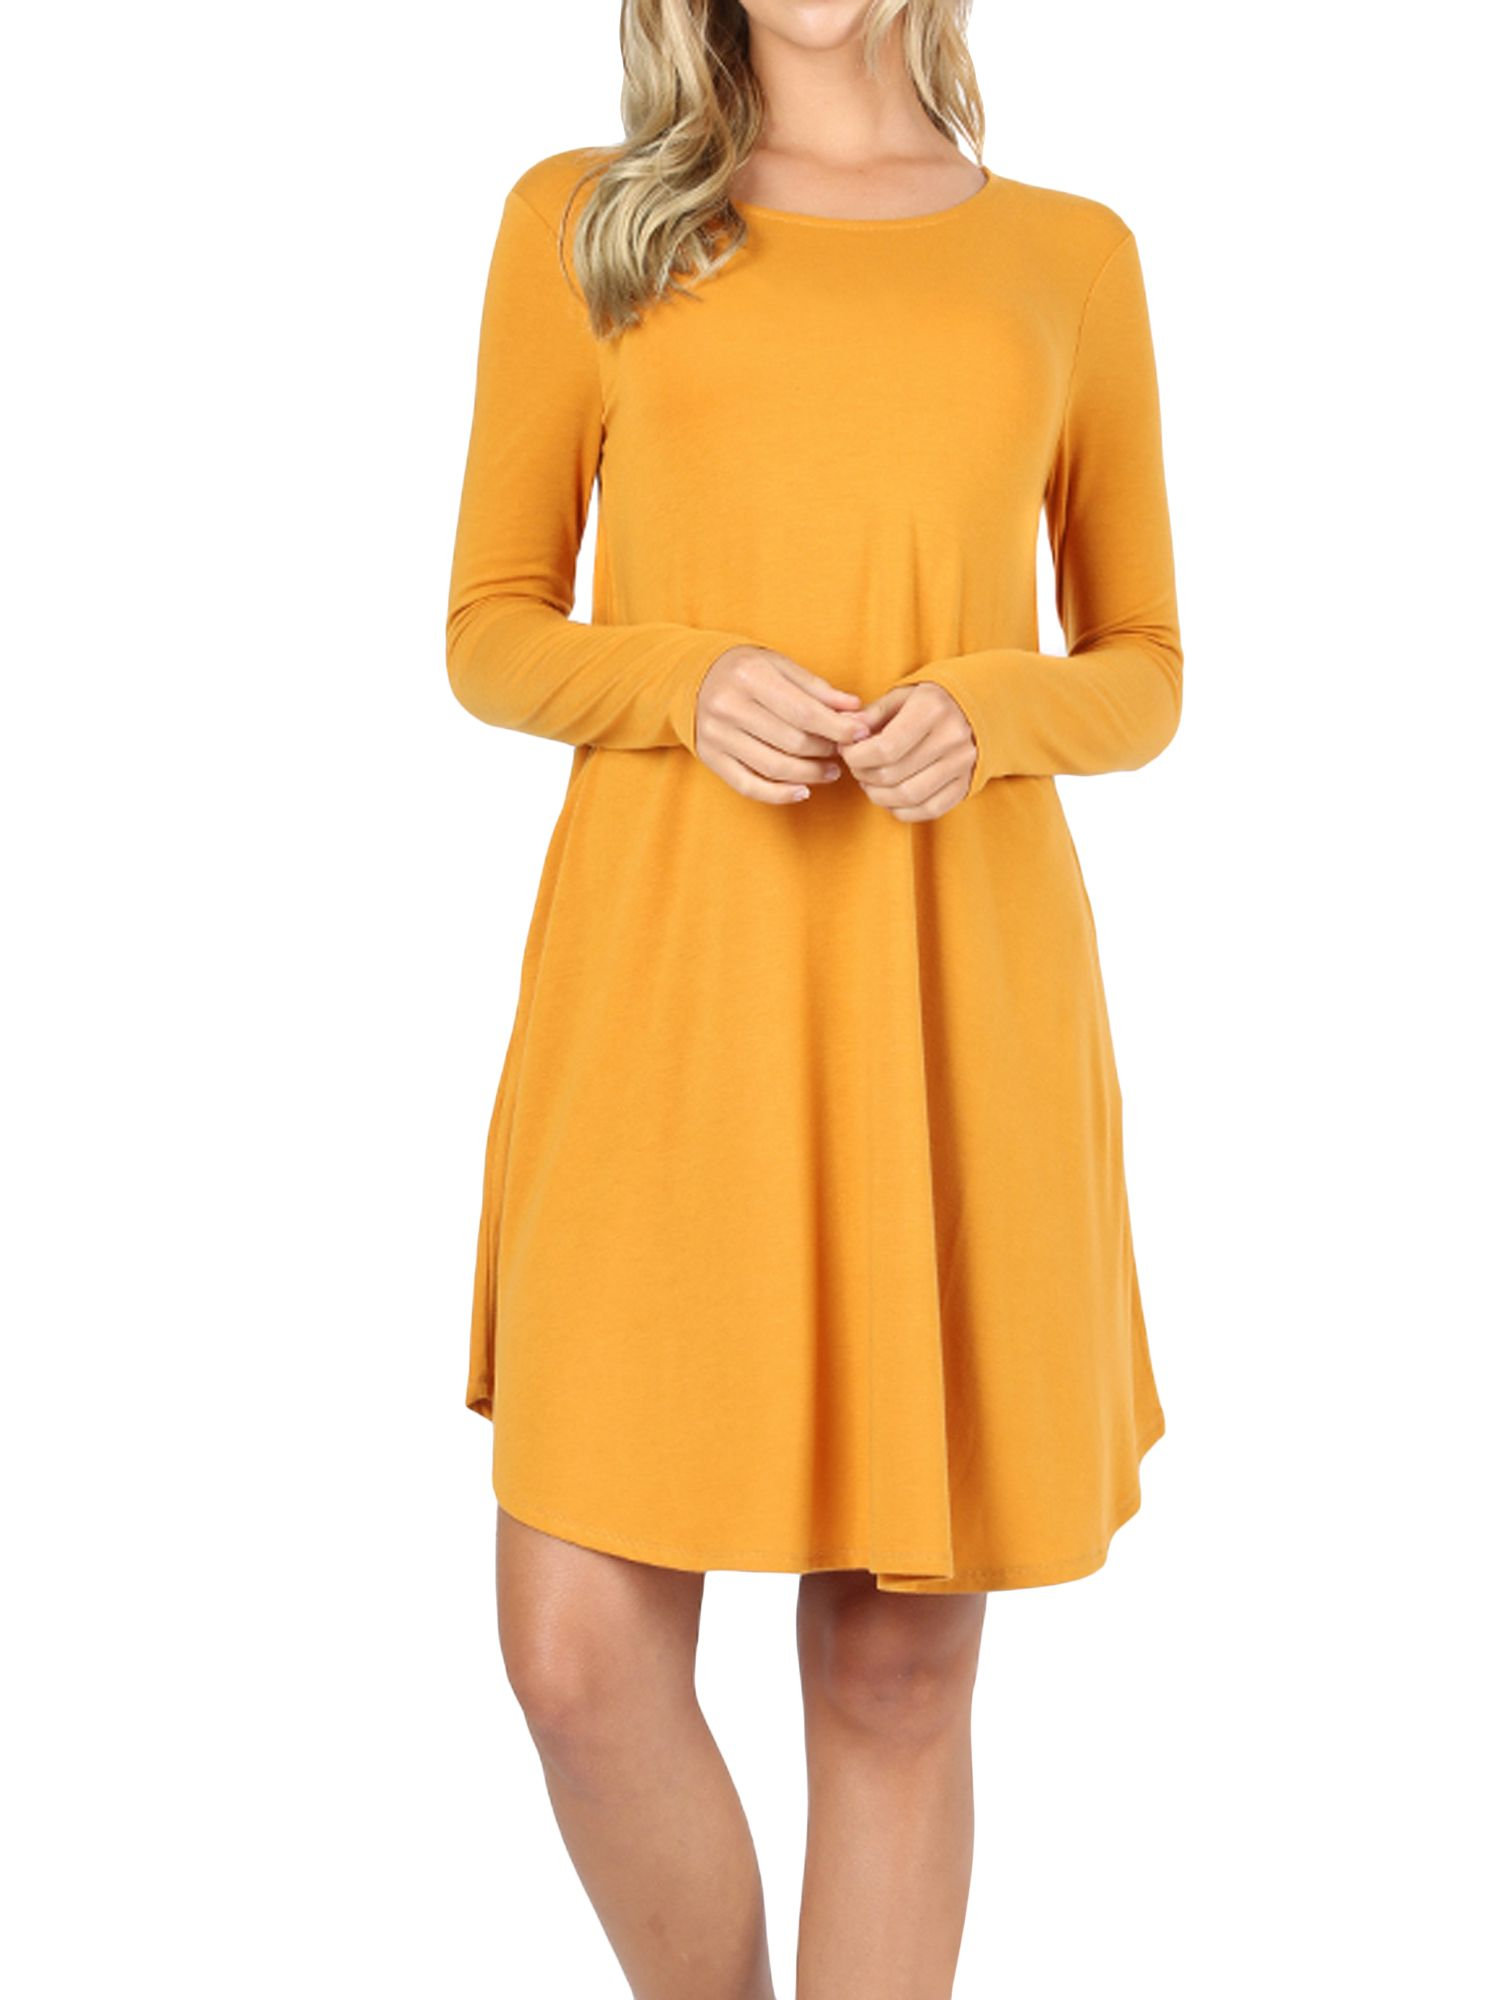 Thelovely Women Long Sleeve Round Neck A Line Pleated Knee Length Tunic Dress With Side Pockets Dk Purple S Walmart Com Women Long Sleeve Knee Length Tunic Dresses [ 2000 x 1500 Pixel ]